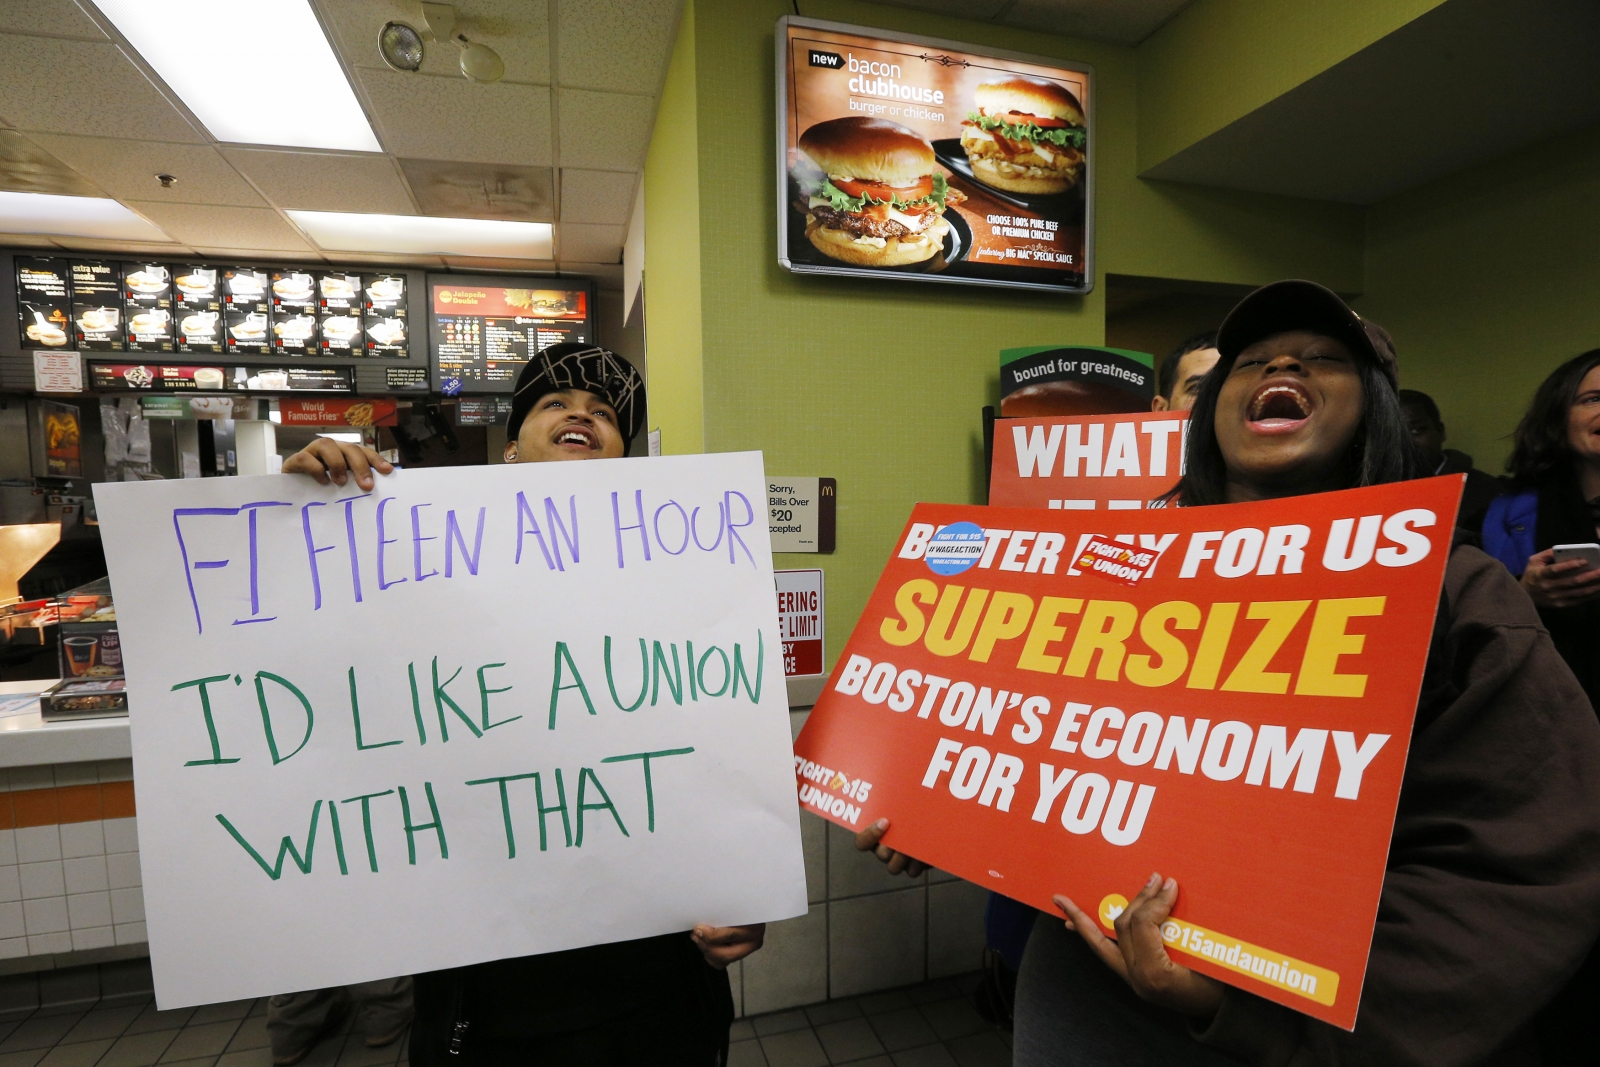 Scores of fast food workers and their supporters calling for a $15 minimum wage fill a McDonalds restaurant in Chelsea, Massachusetts December 4, 2014.